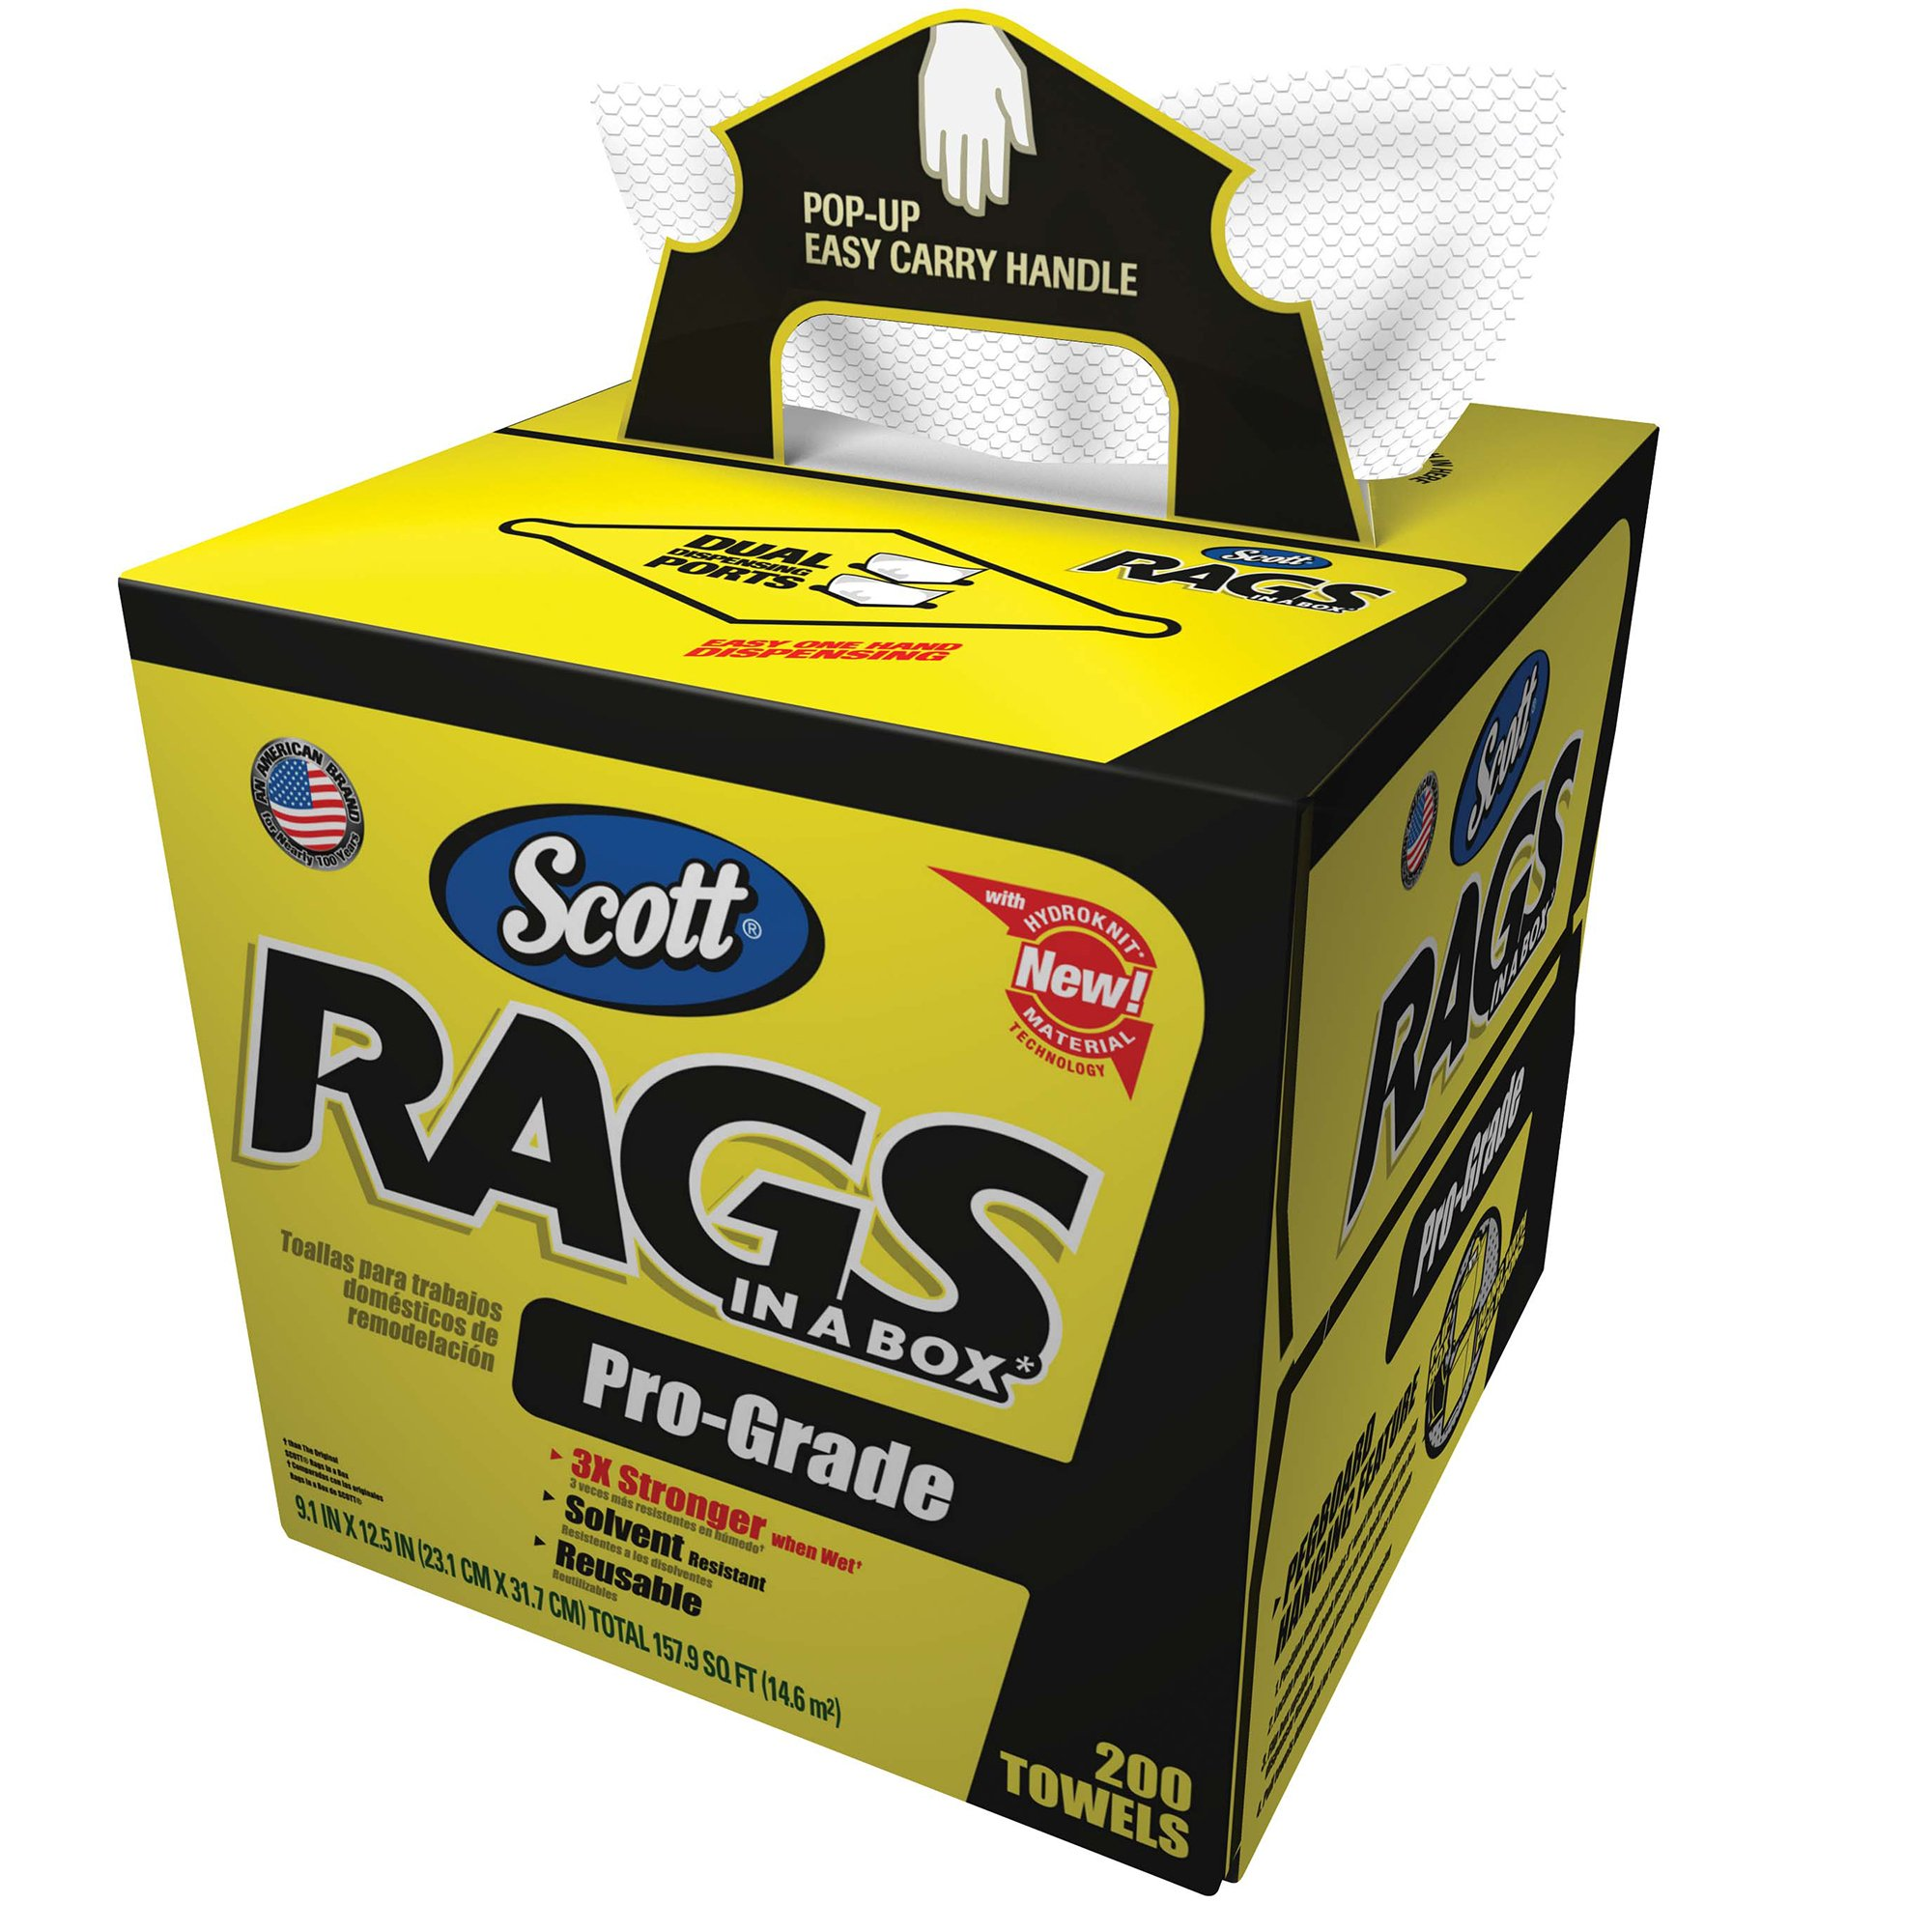 Scott Pro Grade Rags In A Box (39364), Shop Towels for Solvents &